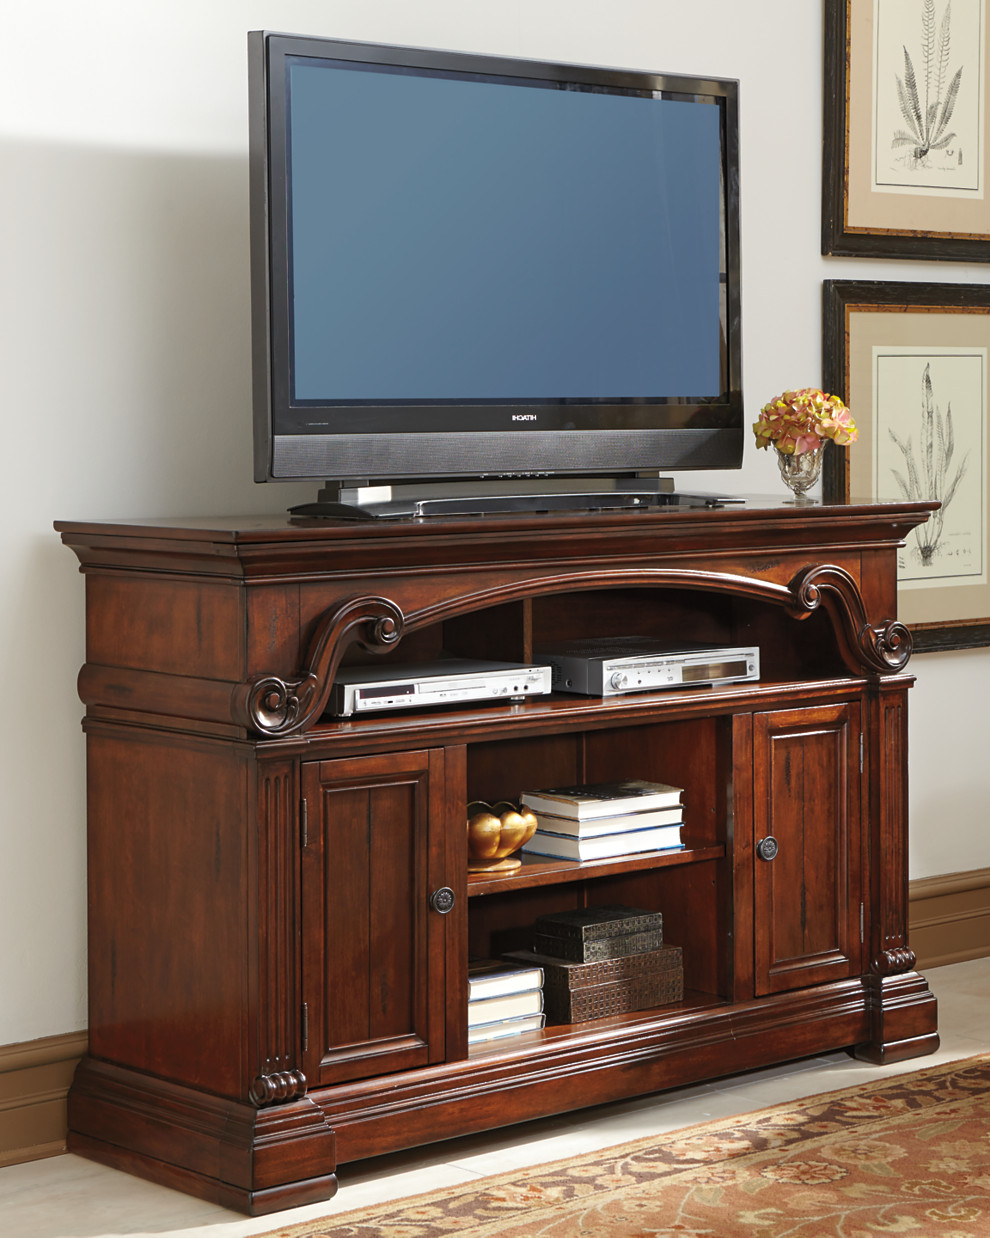 alymere lg tv stand w fireplace option corporate website of